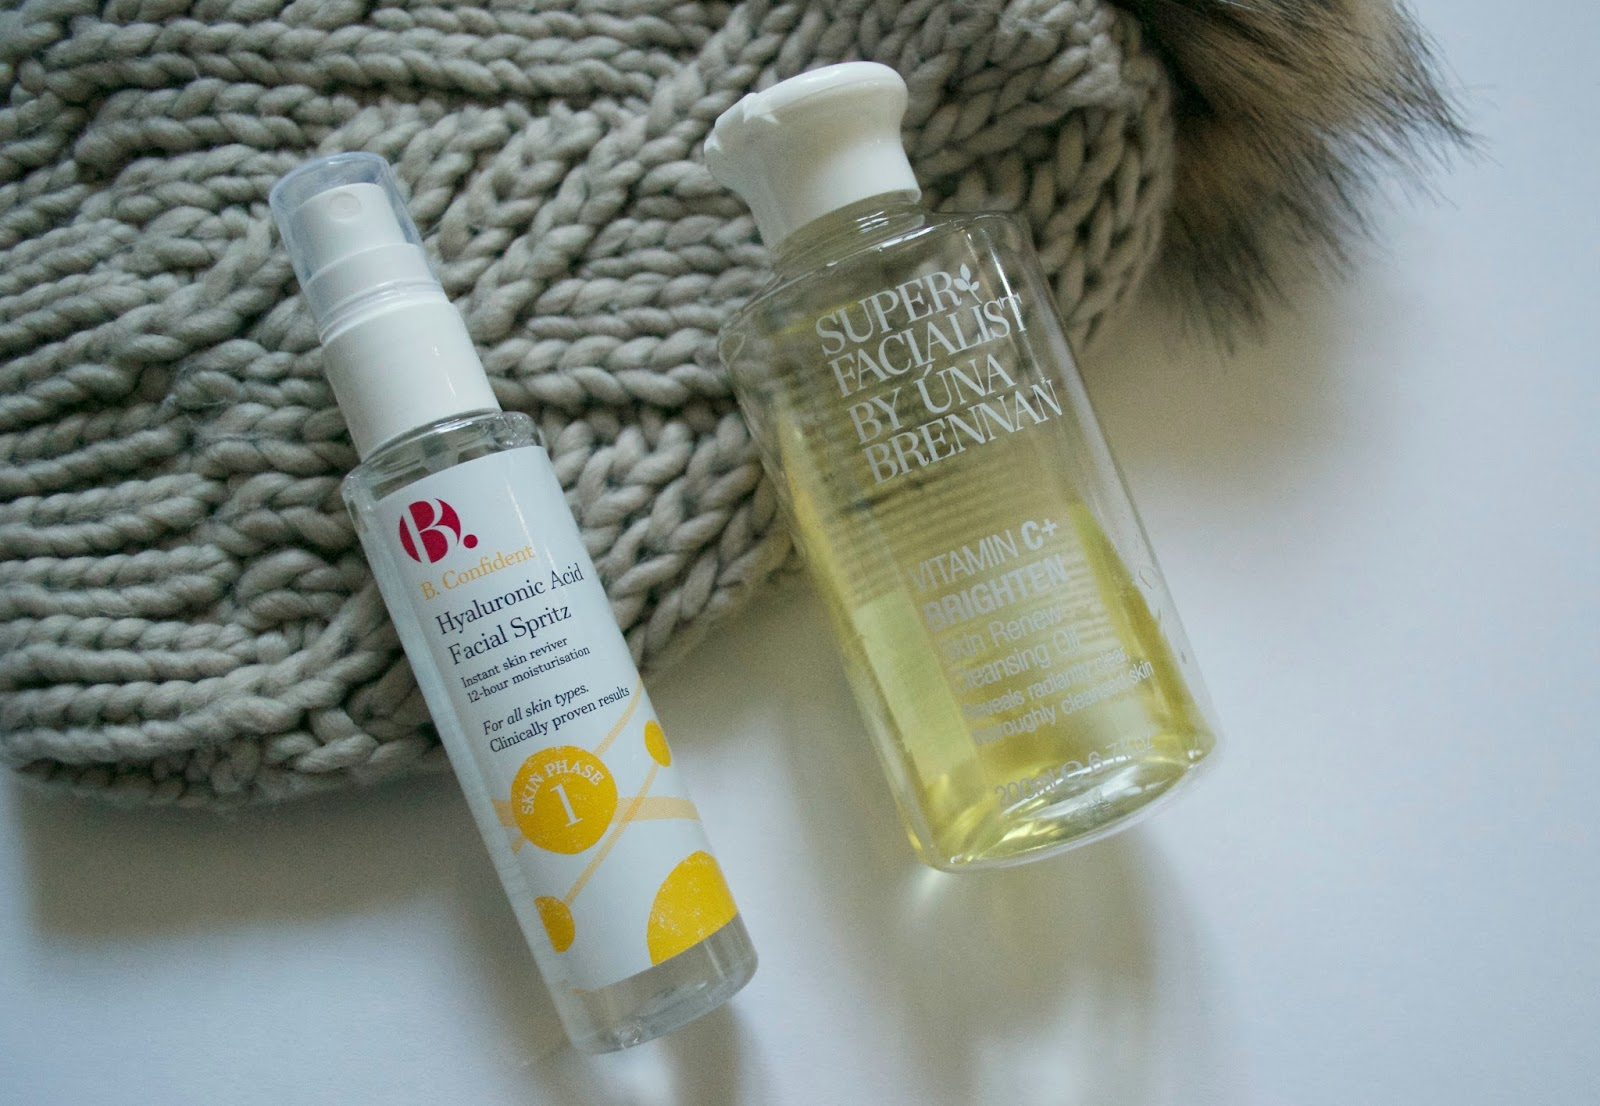 Superfacialist Cleansing Oil + B. Confident Hyaluronic Acid Facial Spritz Review - Aspiring Londoner